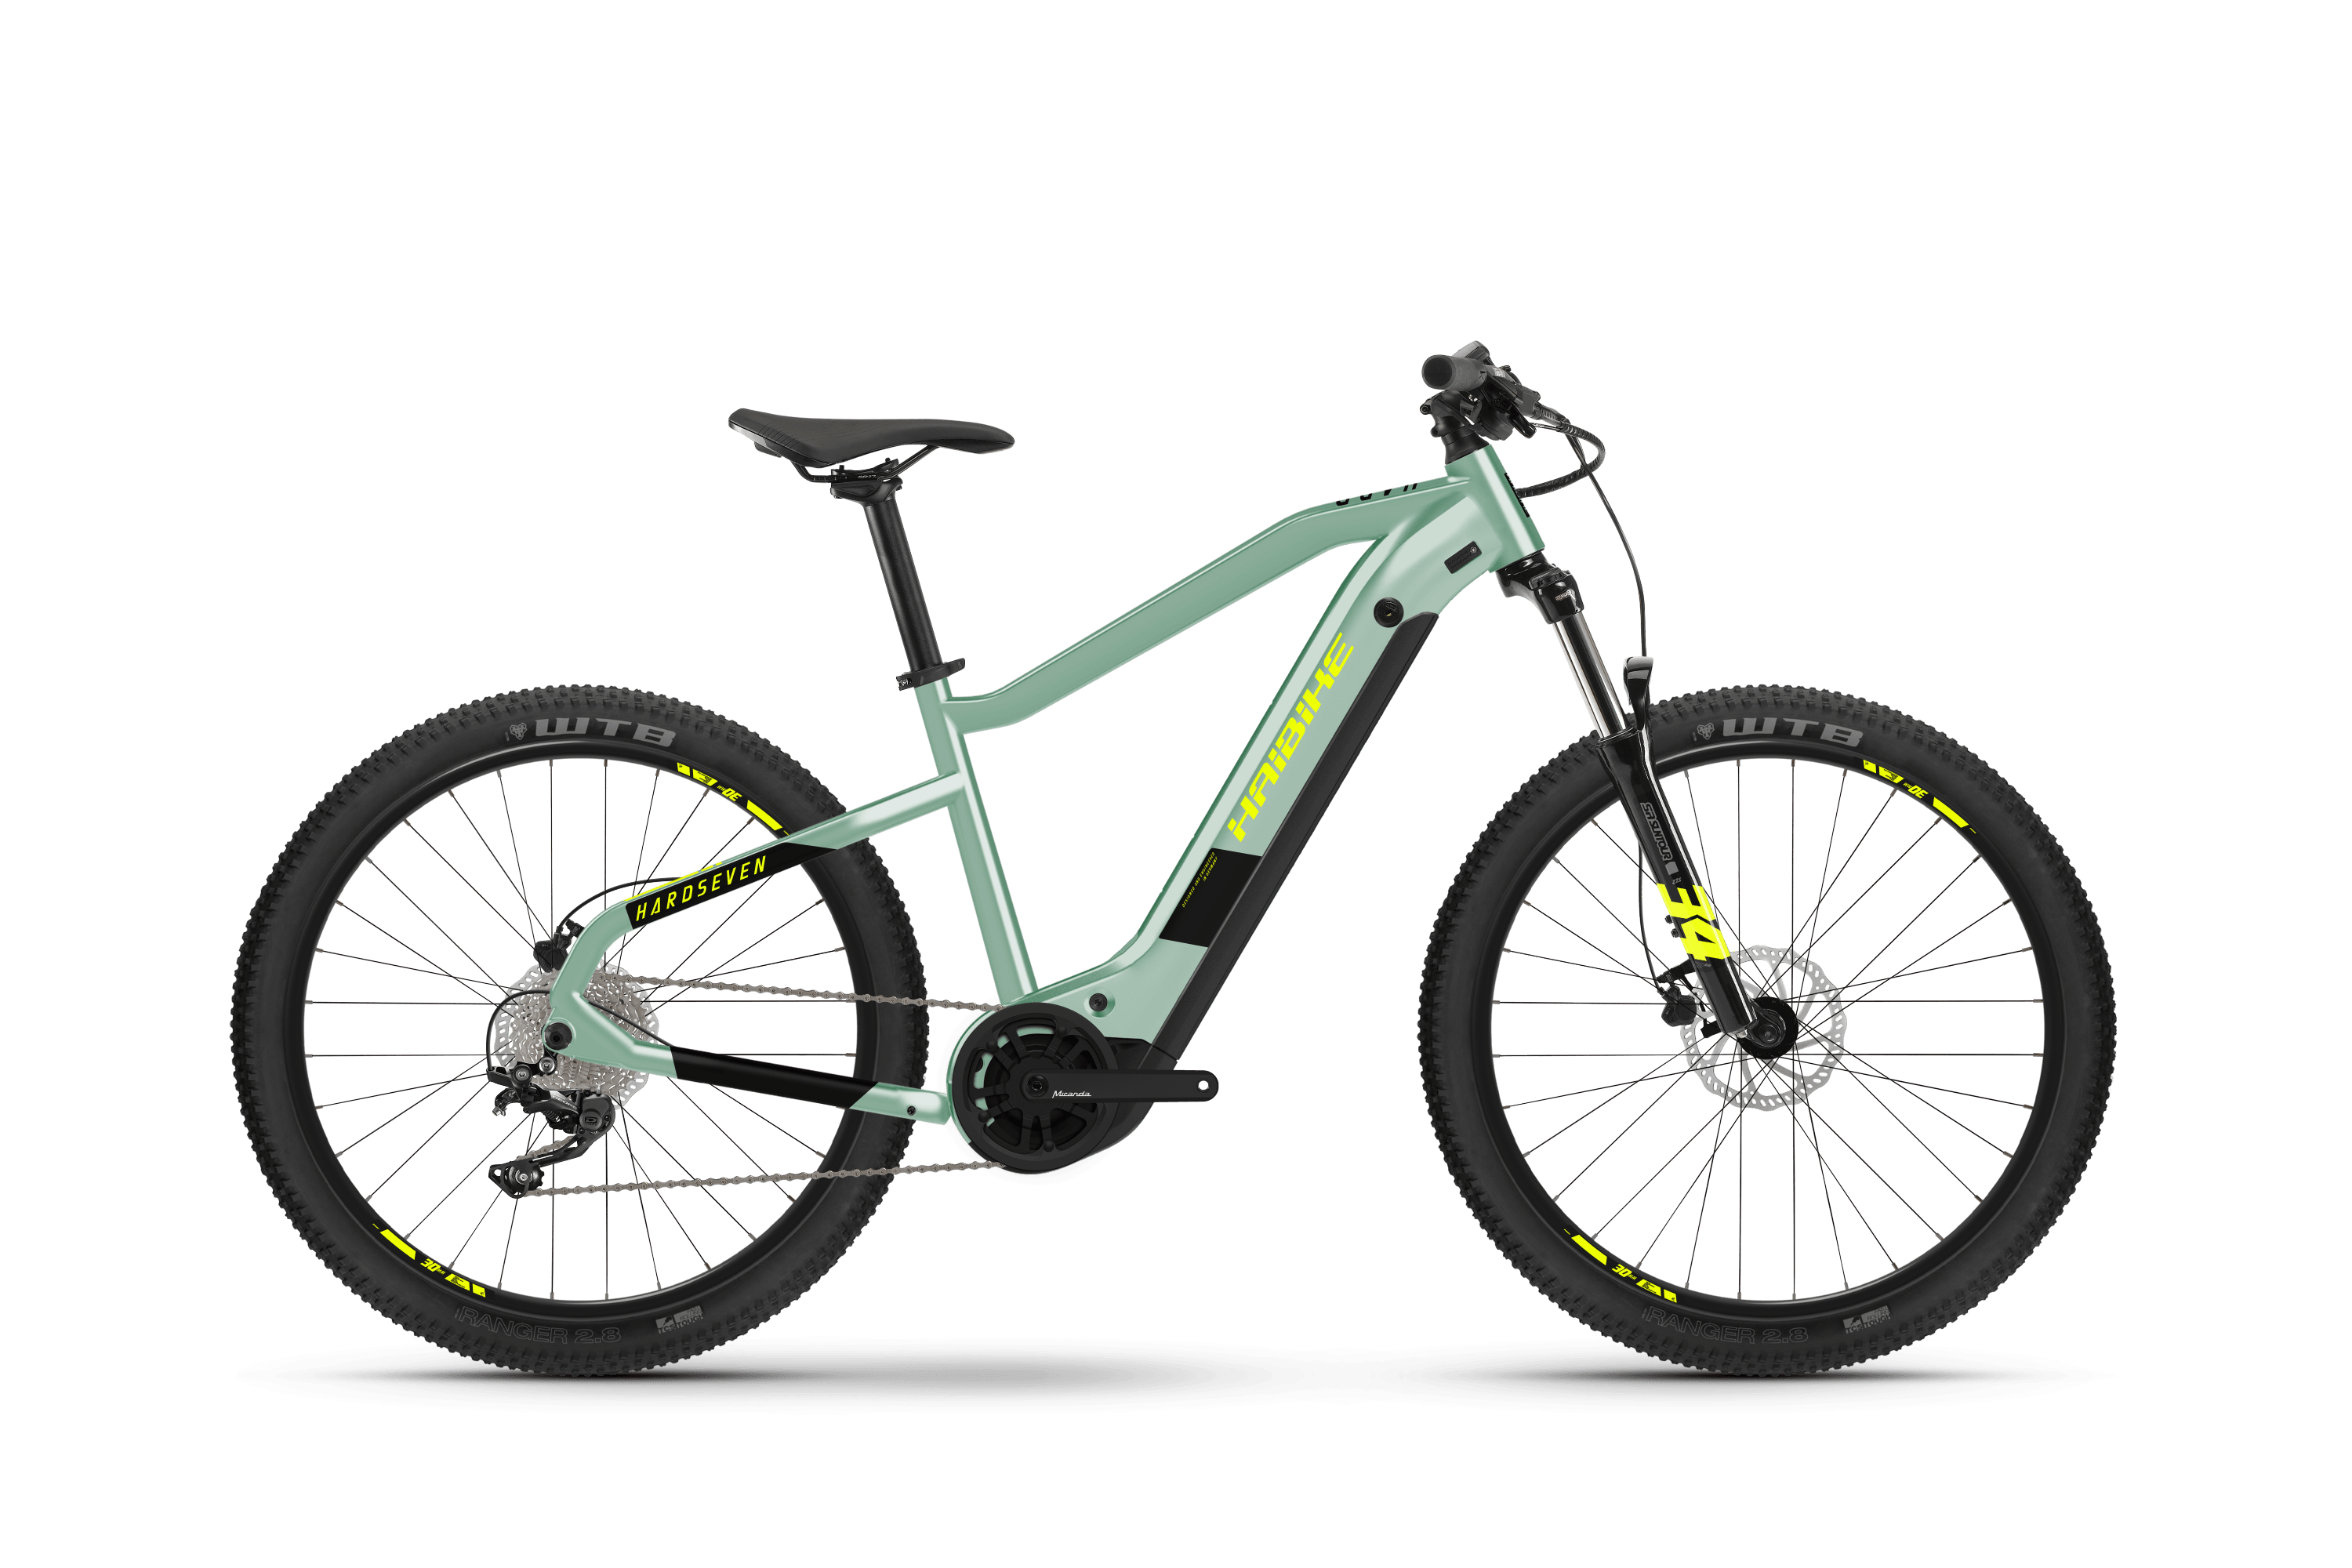 https://w8w5m3f8.stackpathcdn.com/20925/vtt-electrique-haibike-hardseven-6-630wh.jpg